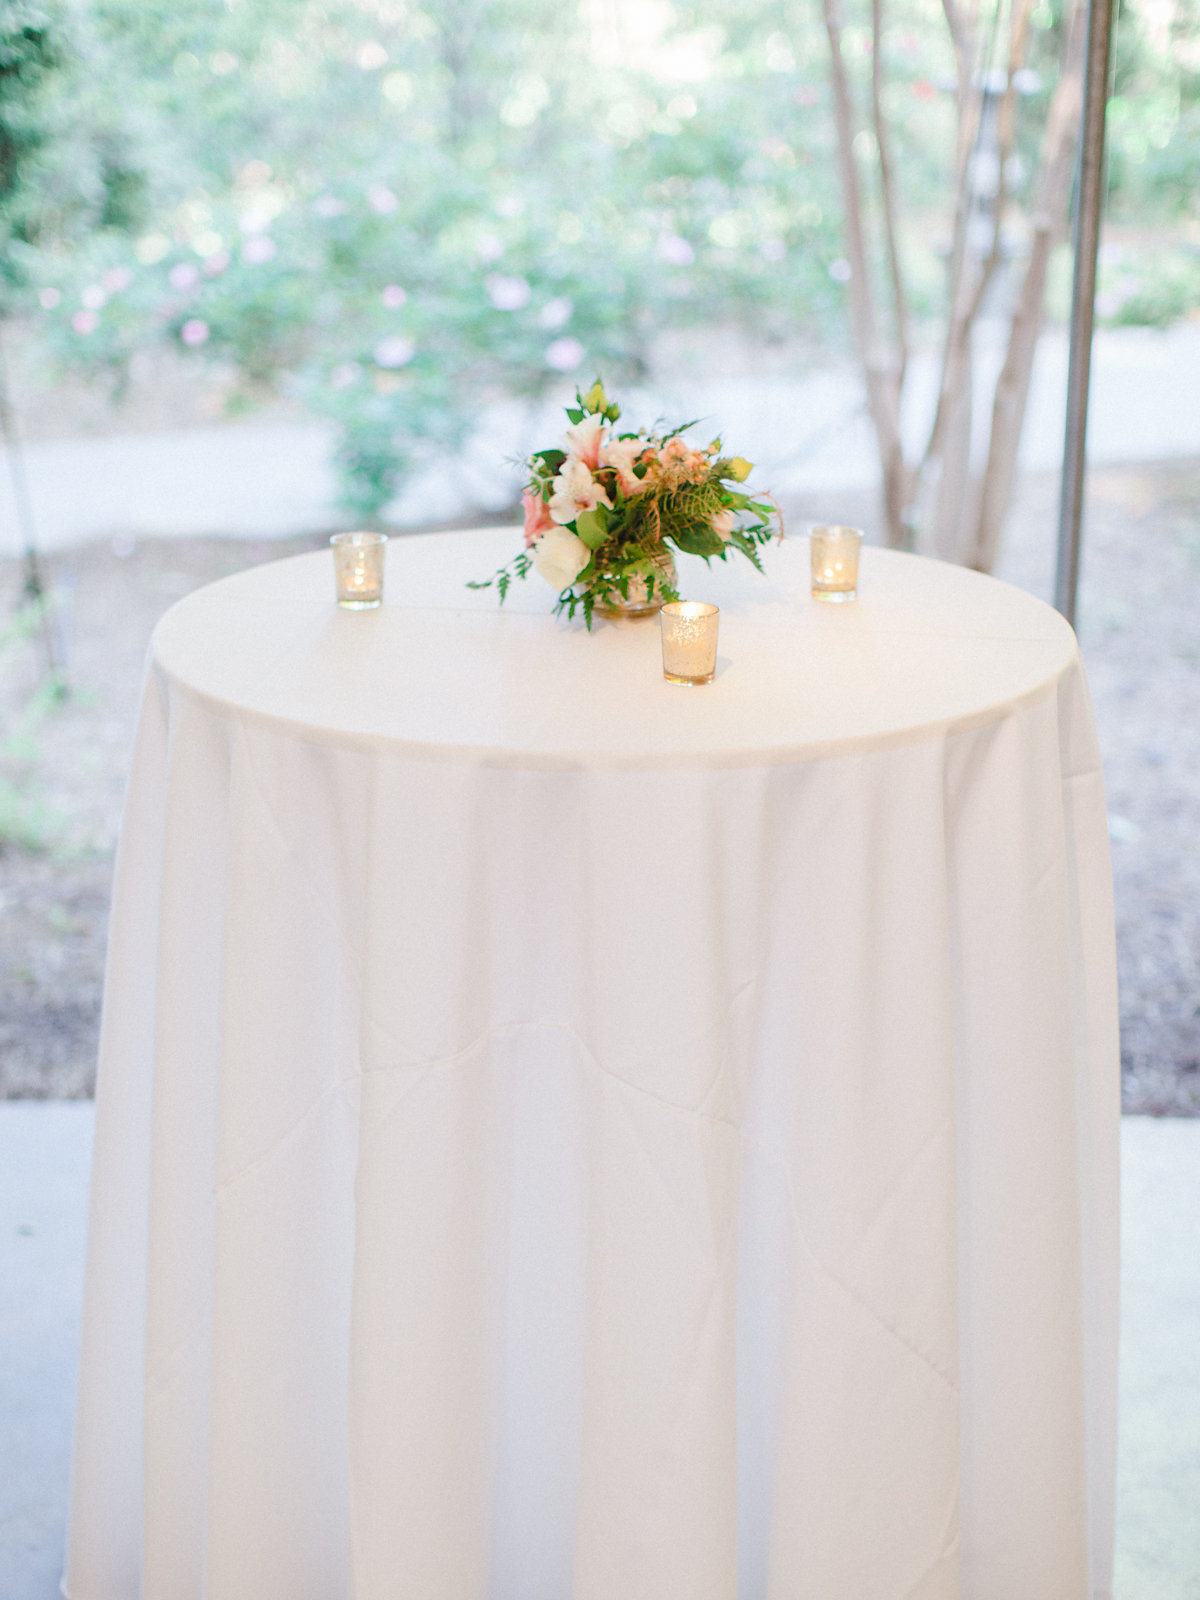 Simply-Charming-Socials_Atlanta-Wedding-Planner_Money-Saving-Wedding-Flowers_8.jpg